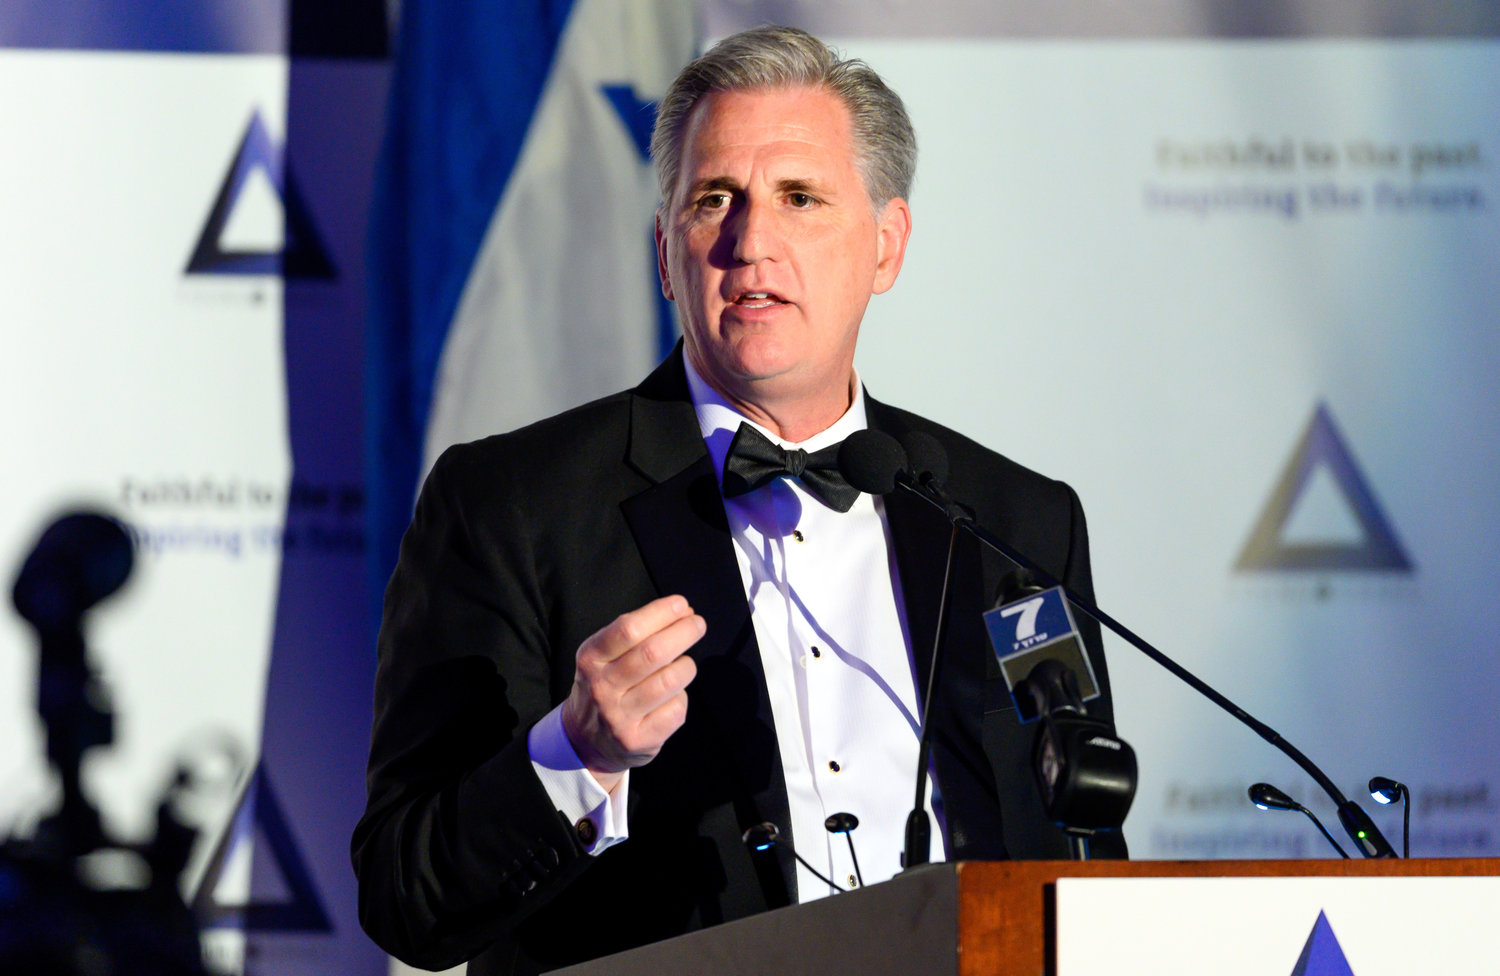 Rep. Kevin McCarthy, the House minority leader, speaks at the gala dinner of the National Council of Young Israel on March 31.